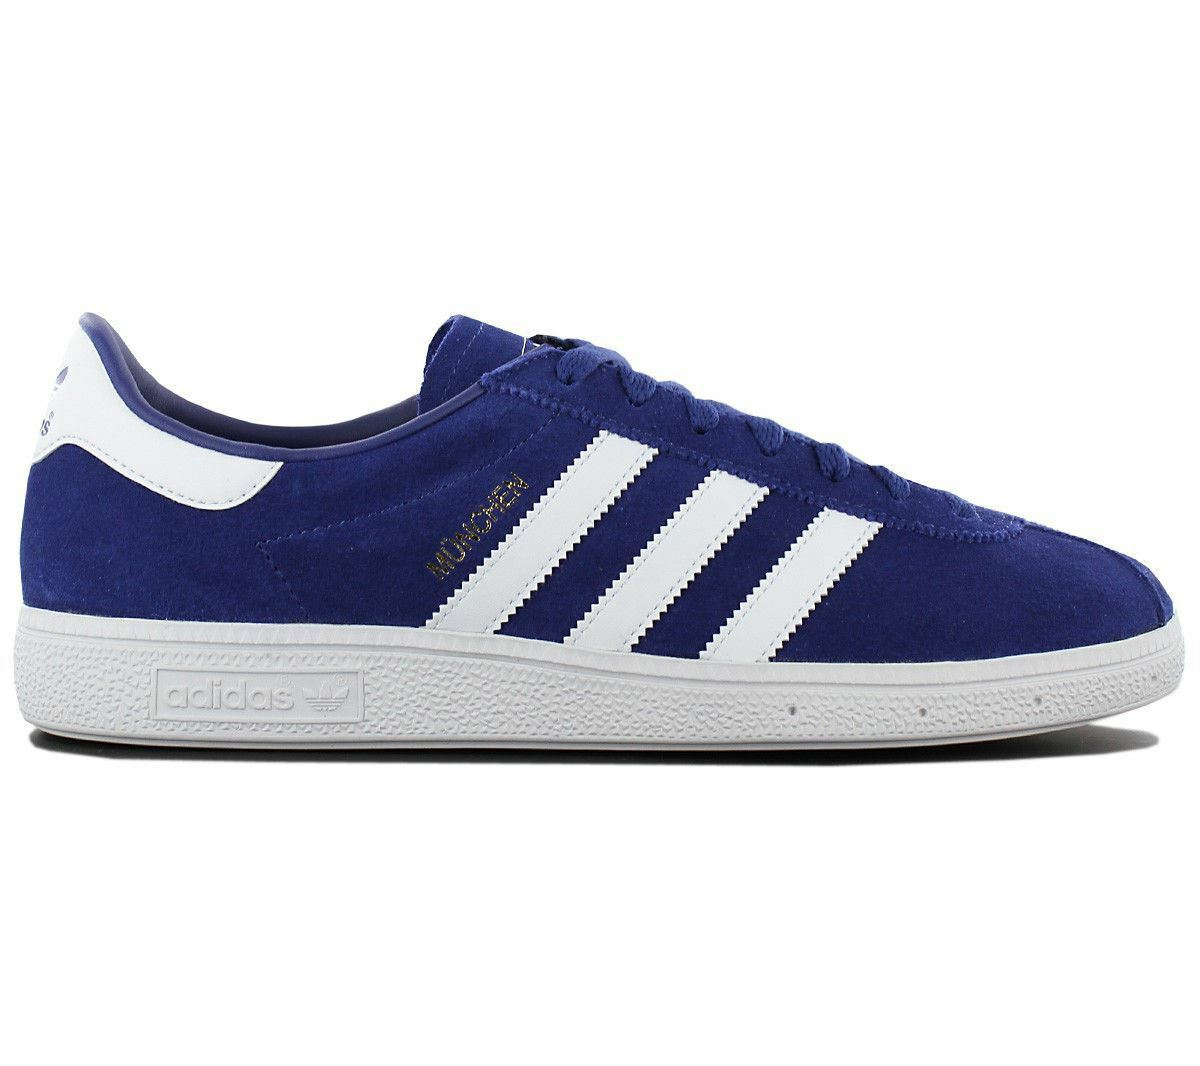 adidas Munchen BY9787Mens Trainers GrößeS UK 6 to 11.5